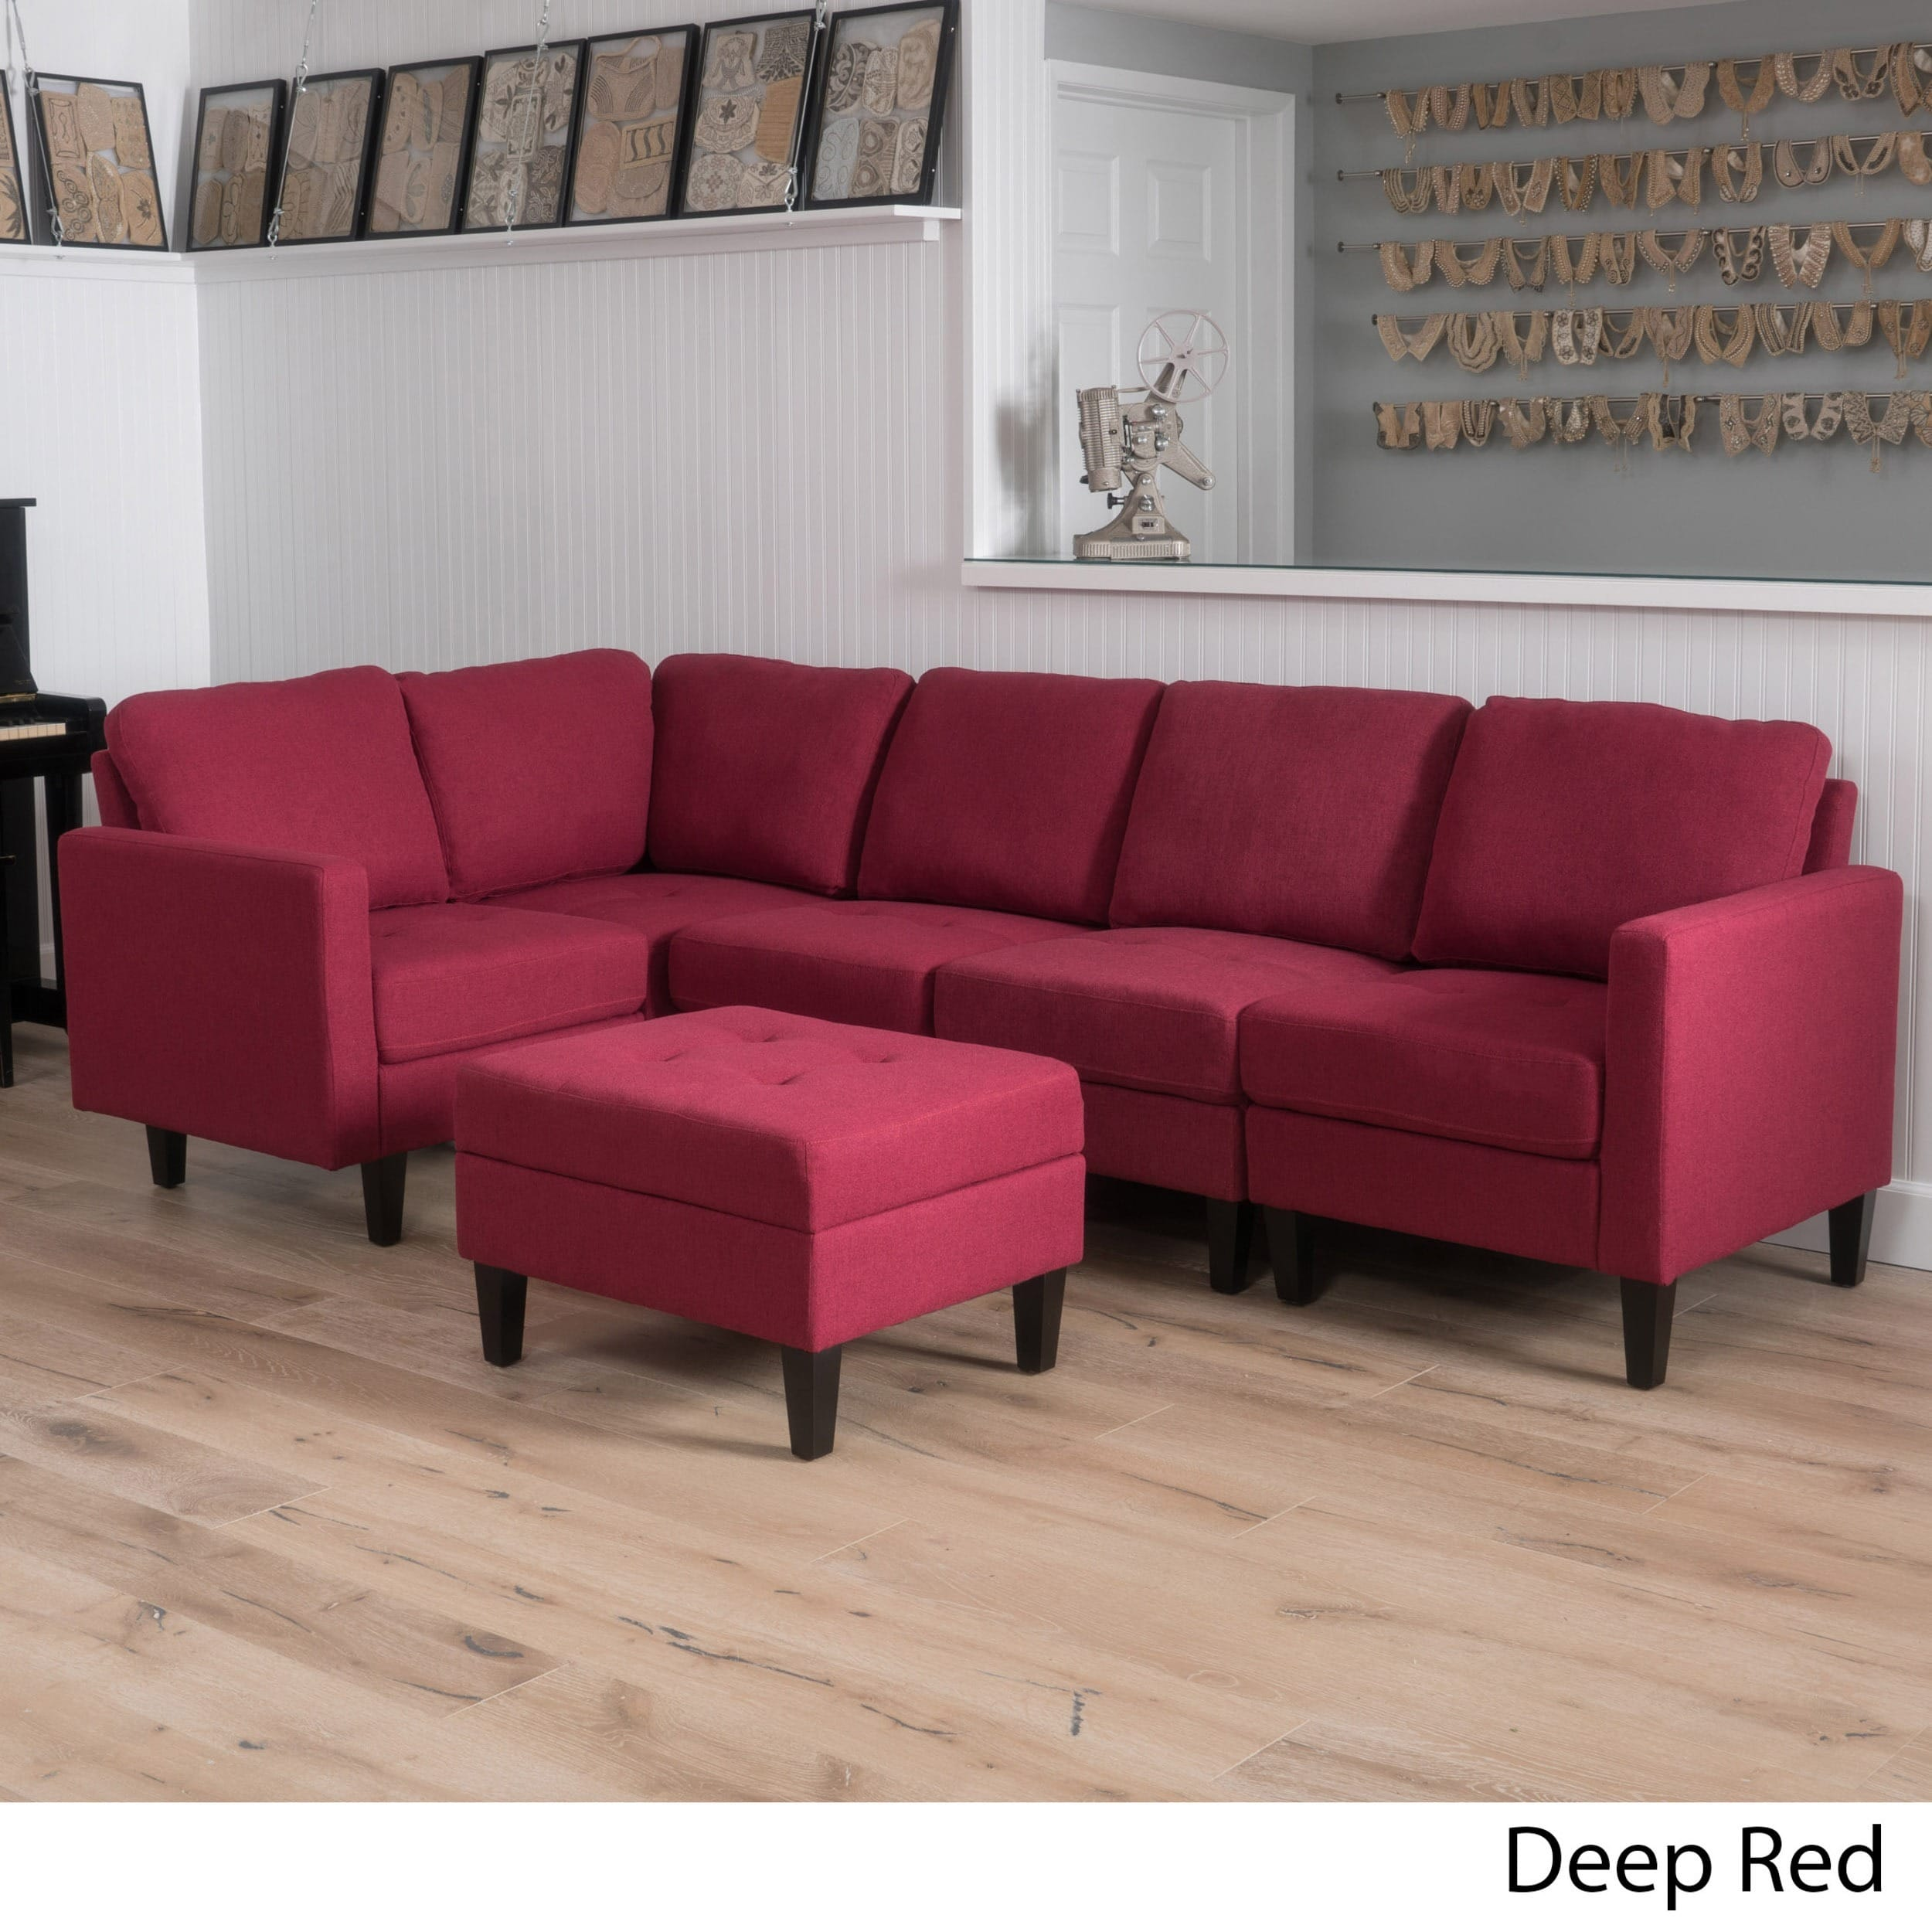 Christopher Knight Home Zahra 6-piece Fabric Sofa Sectional with Storage Ottoman by